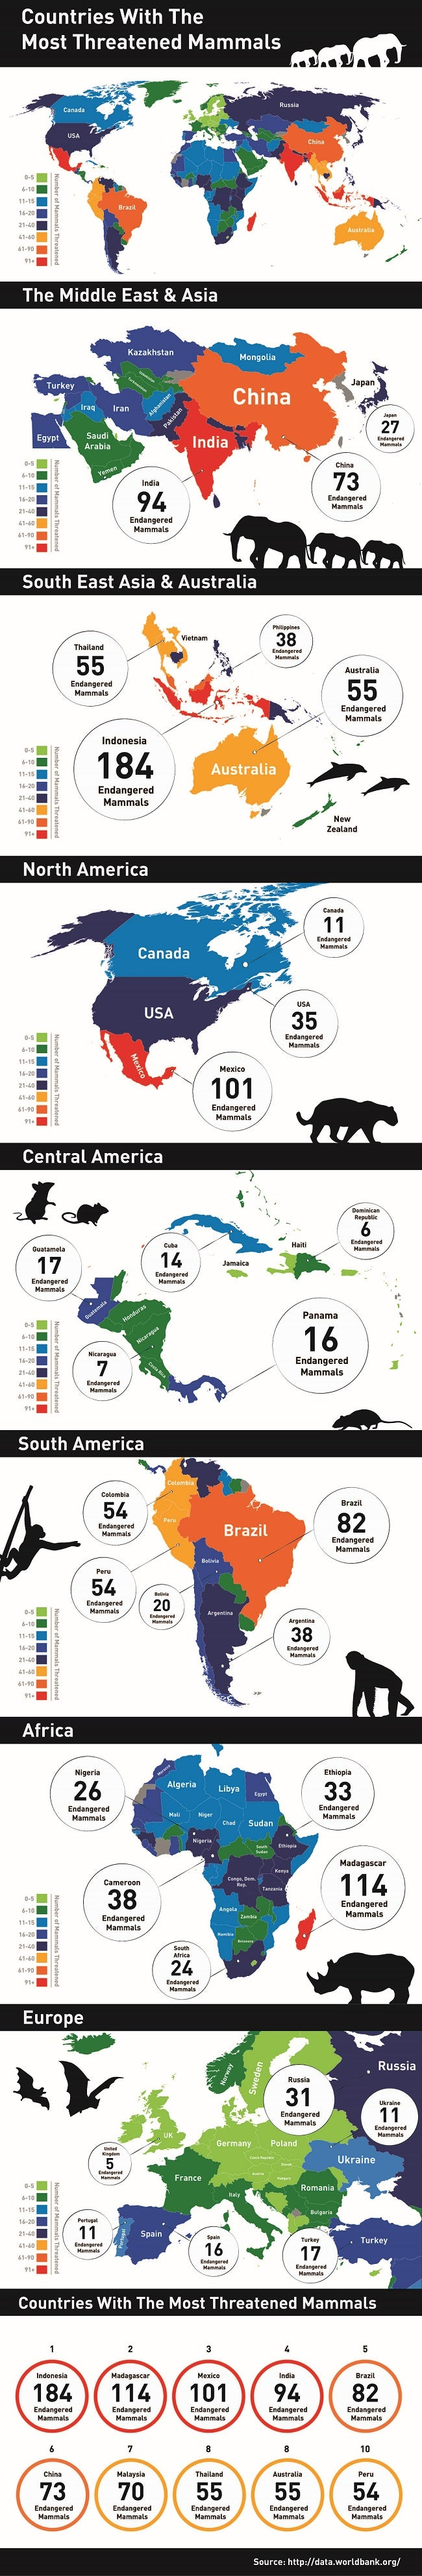 world map showing number of mammals at risk